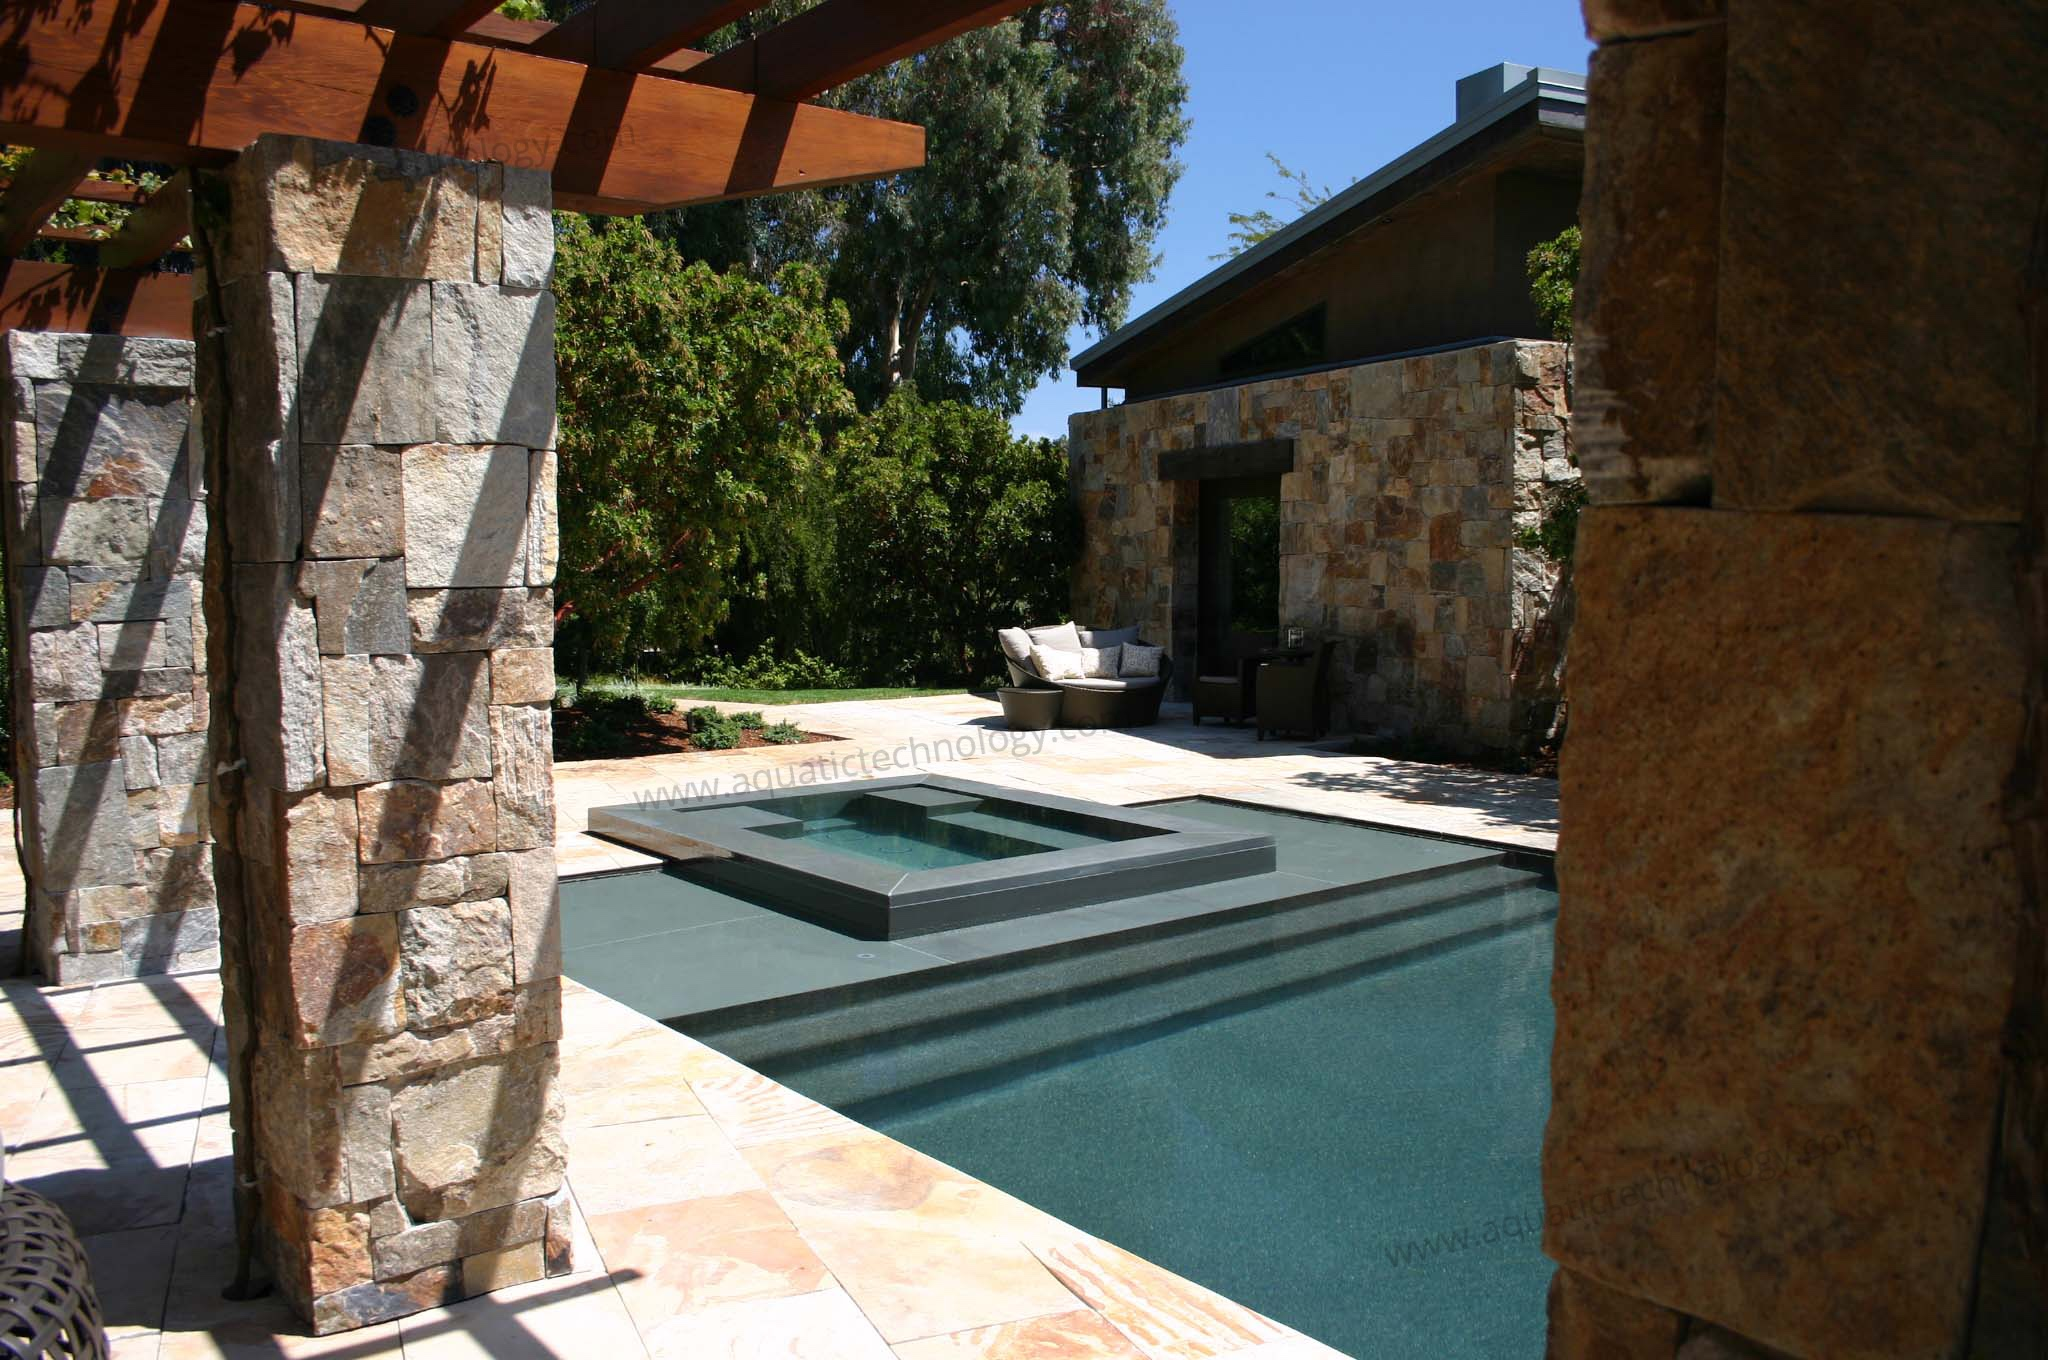 Mosaic glass tile spa vanishing edge pool